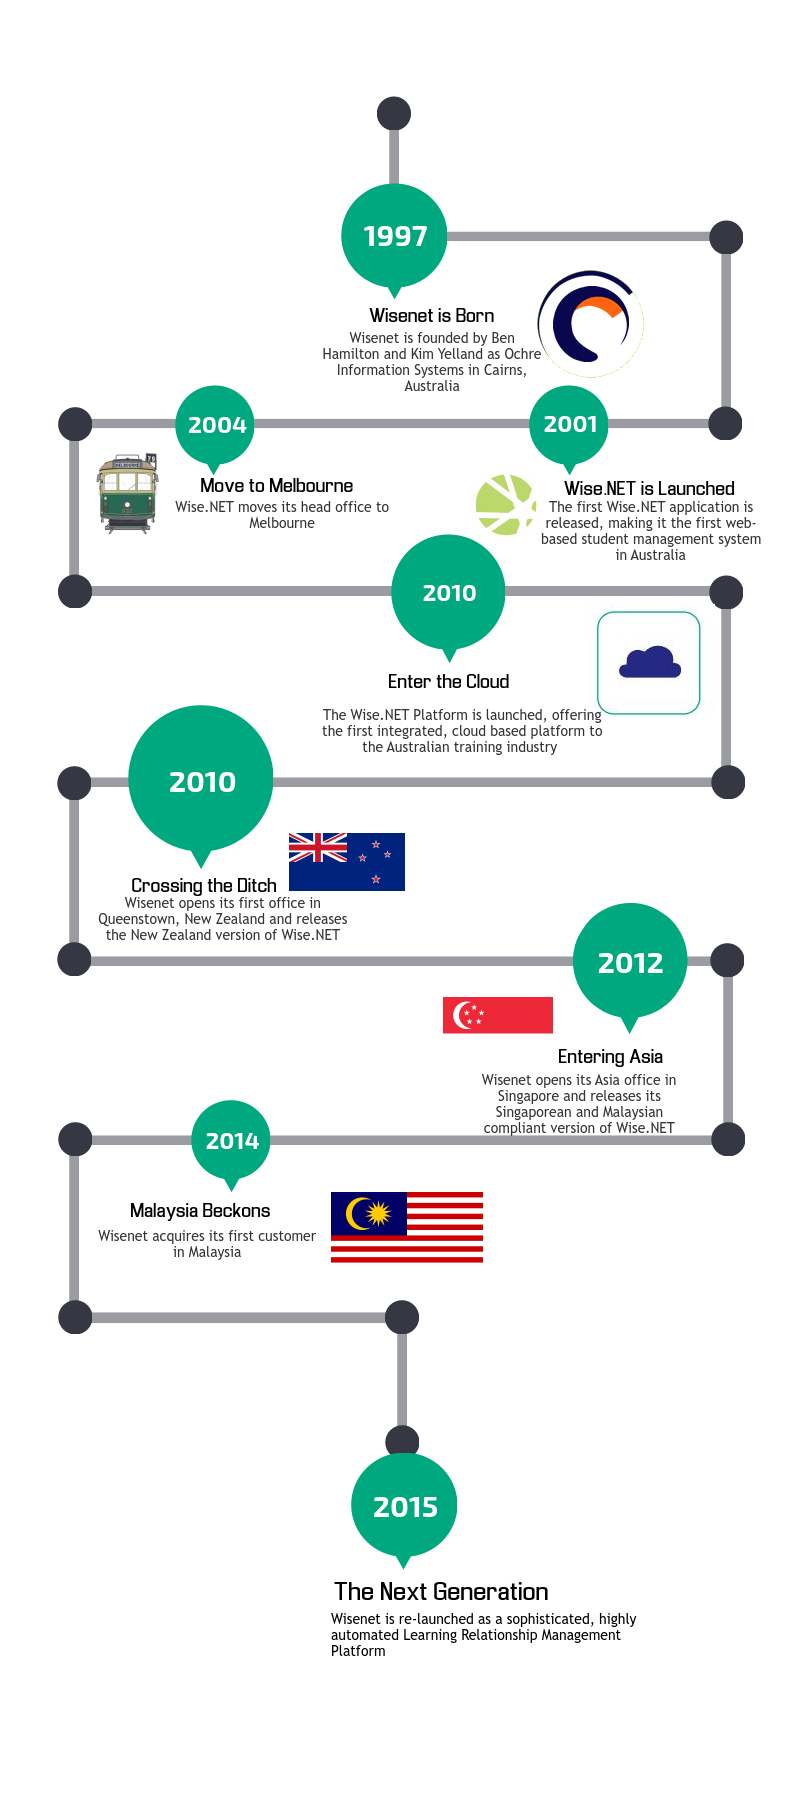 Learn about Wisenet's journey that began in 1997!